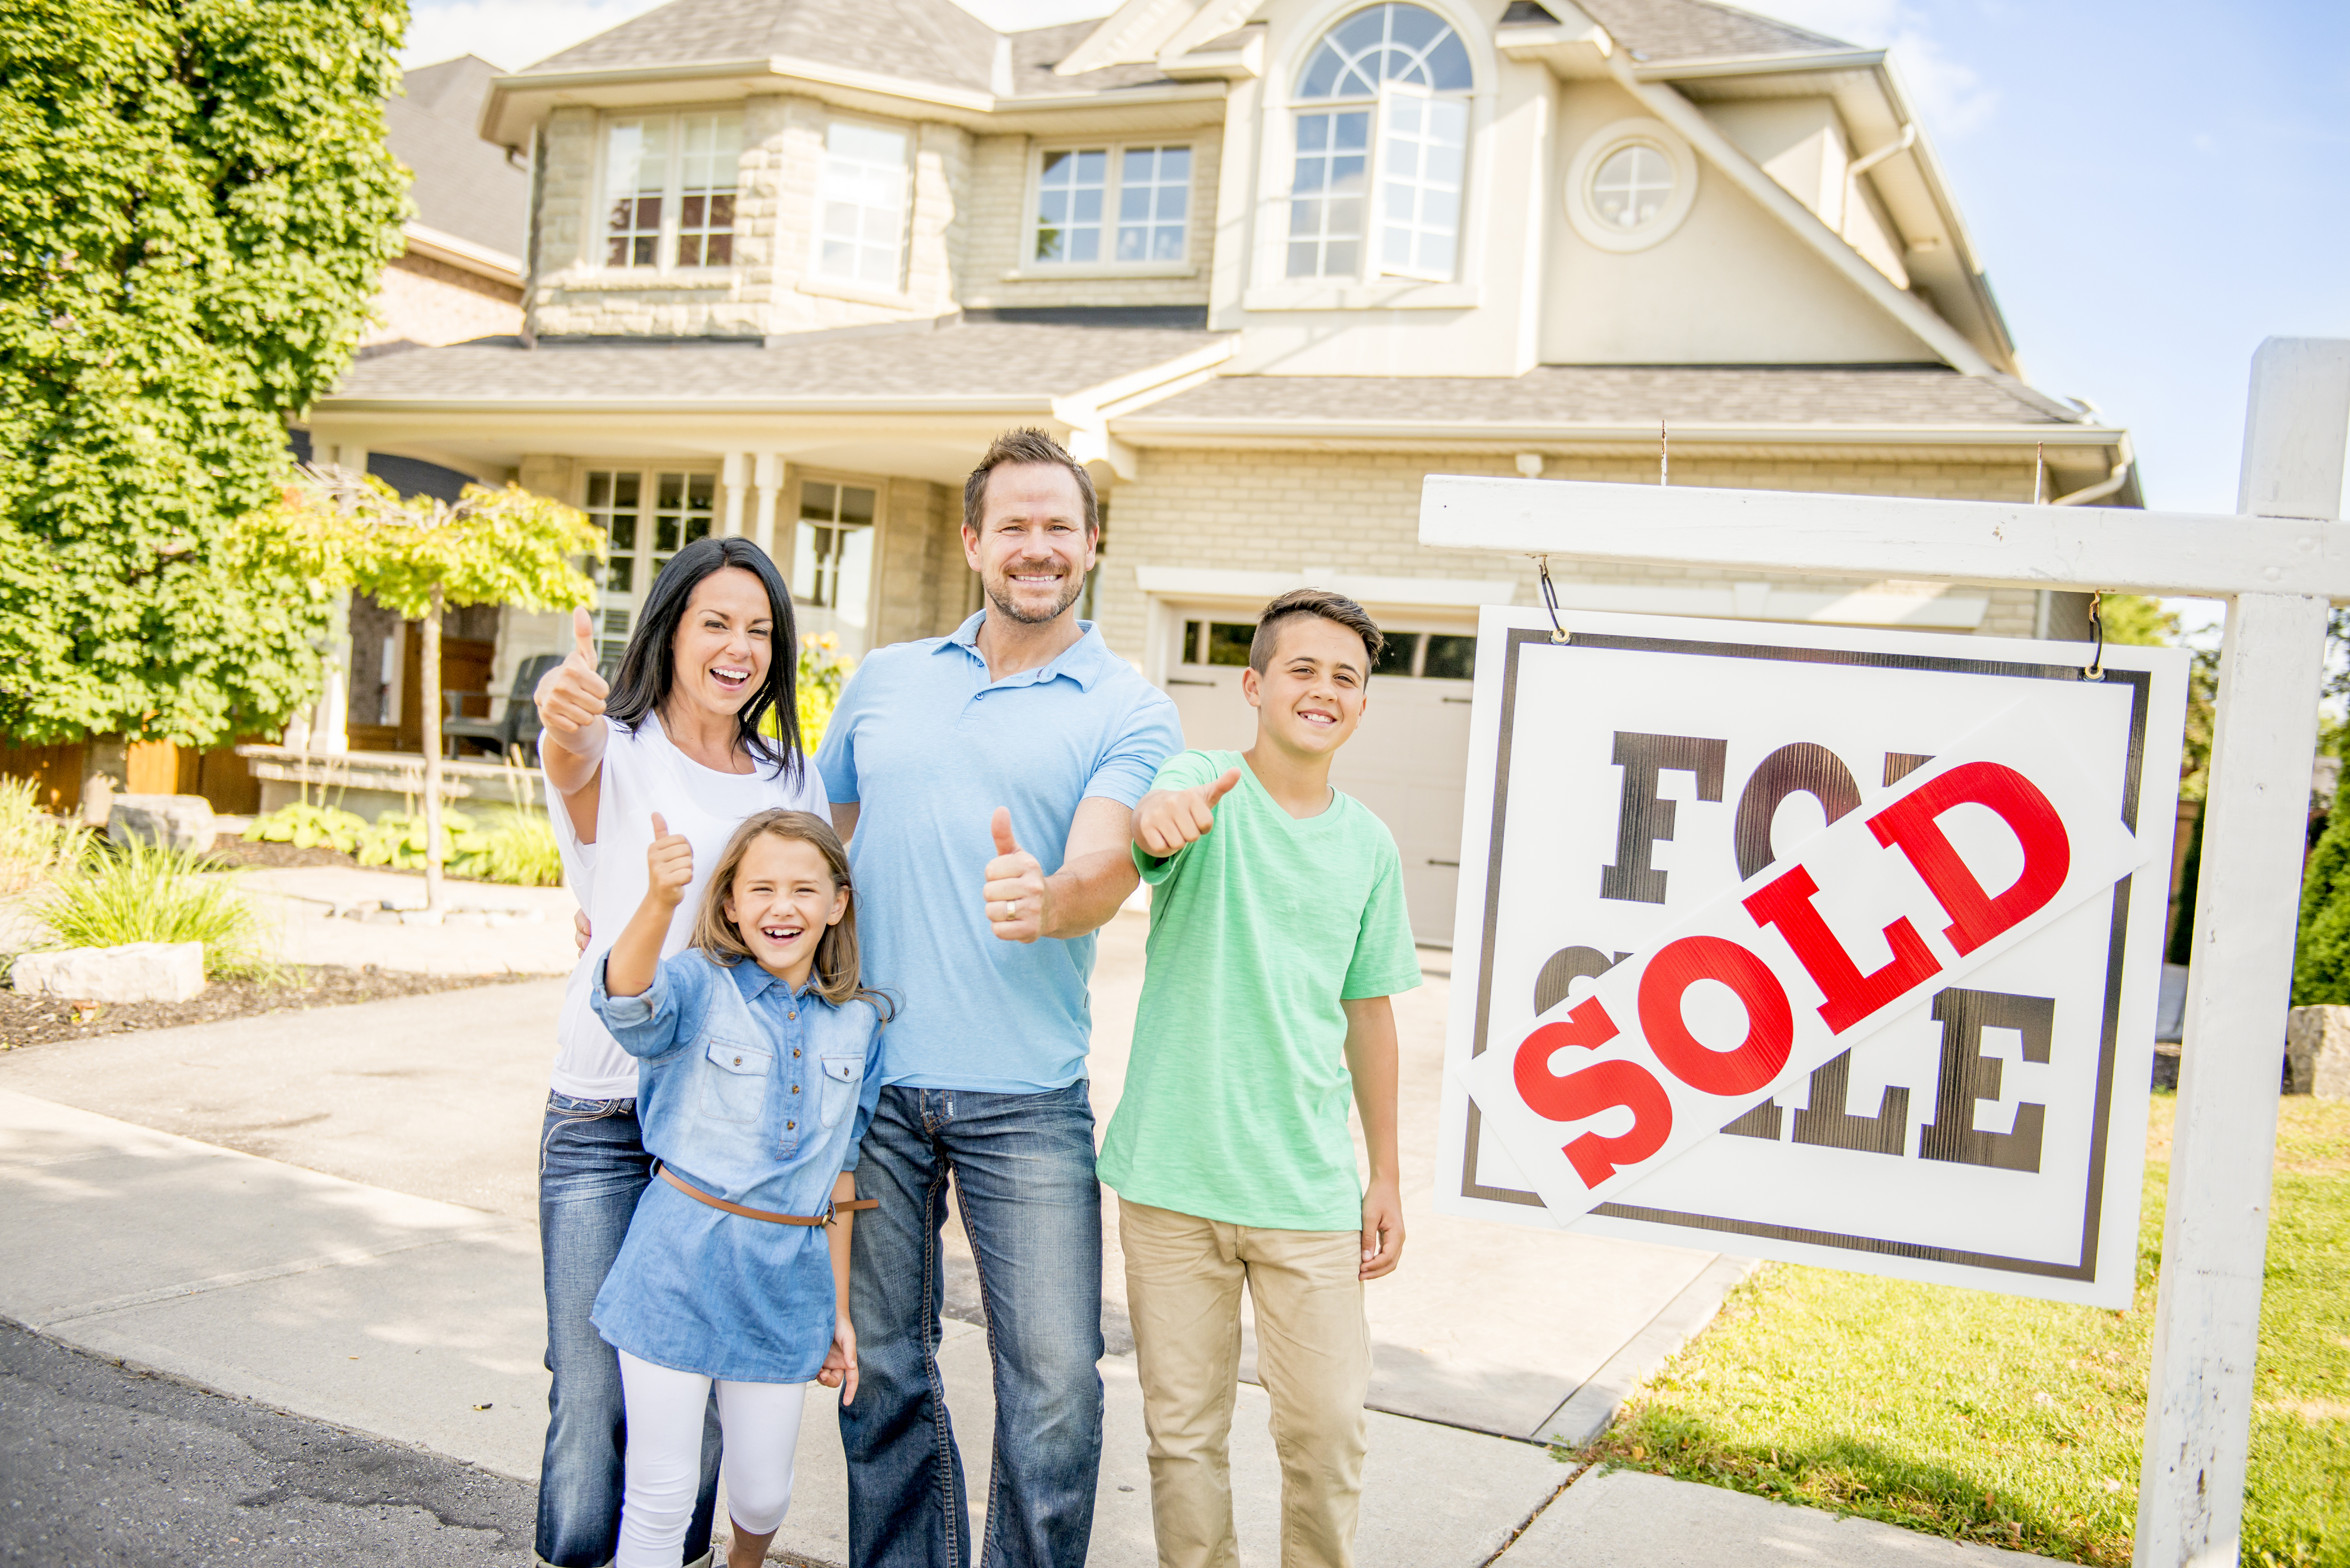 What Is Your Home Worth Today? Understanding Home Price Appreciation In The Dallas-Fort Worth Metroplex